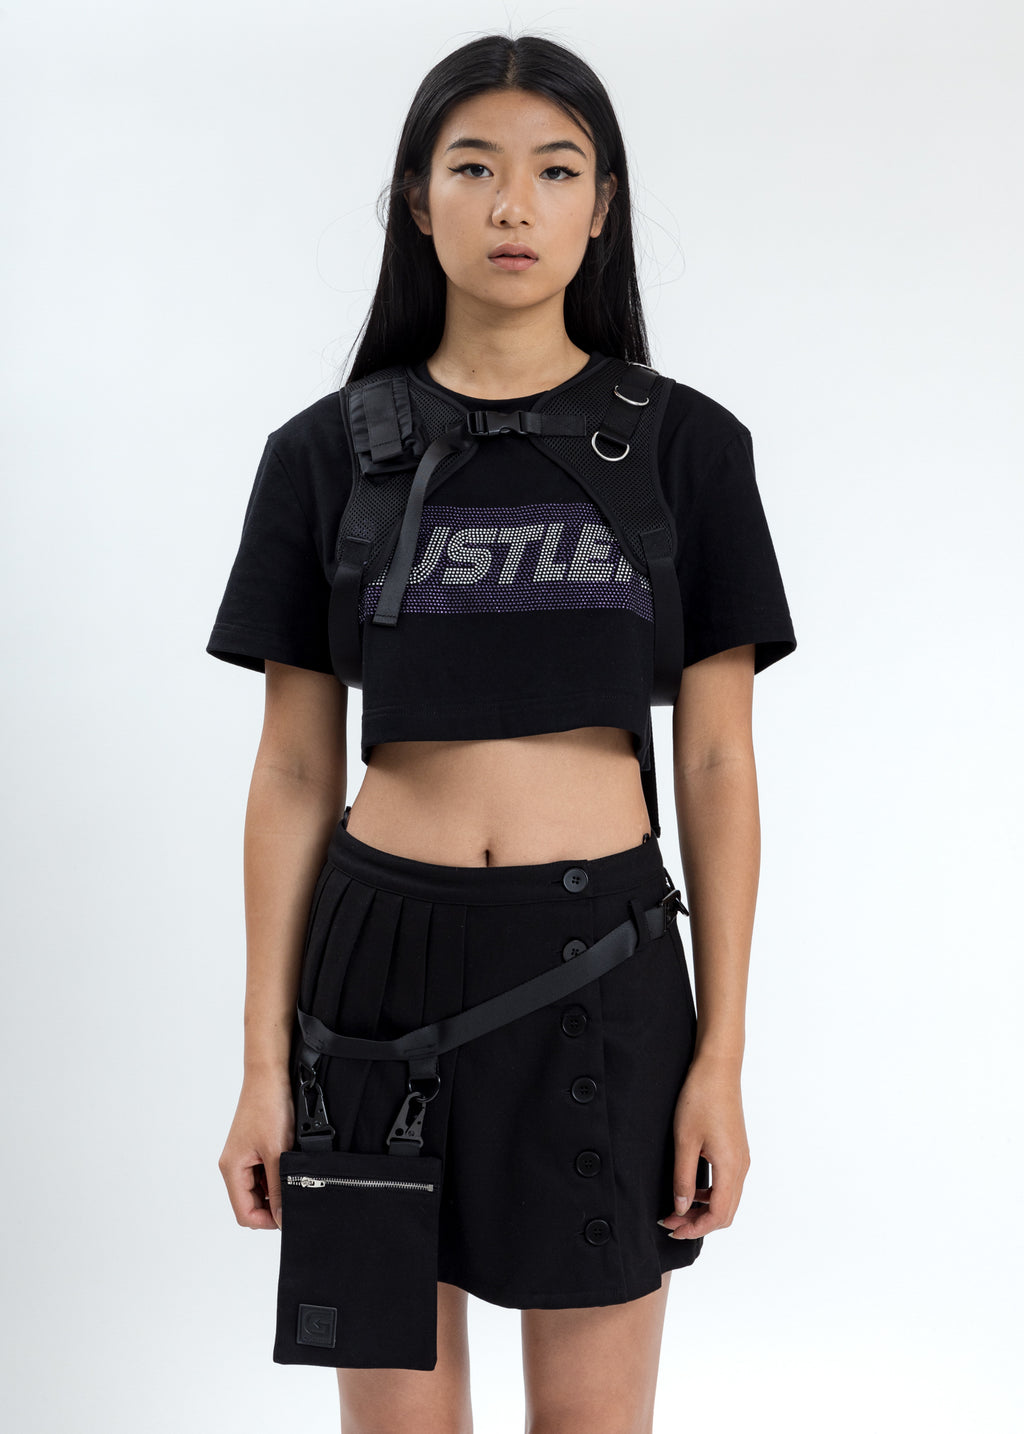 Black Crop T-Shirt With Chest Harness (Crystal)